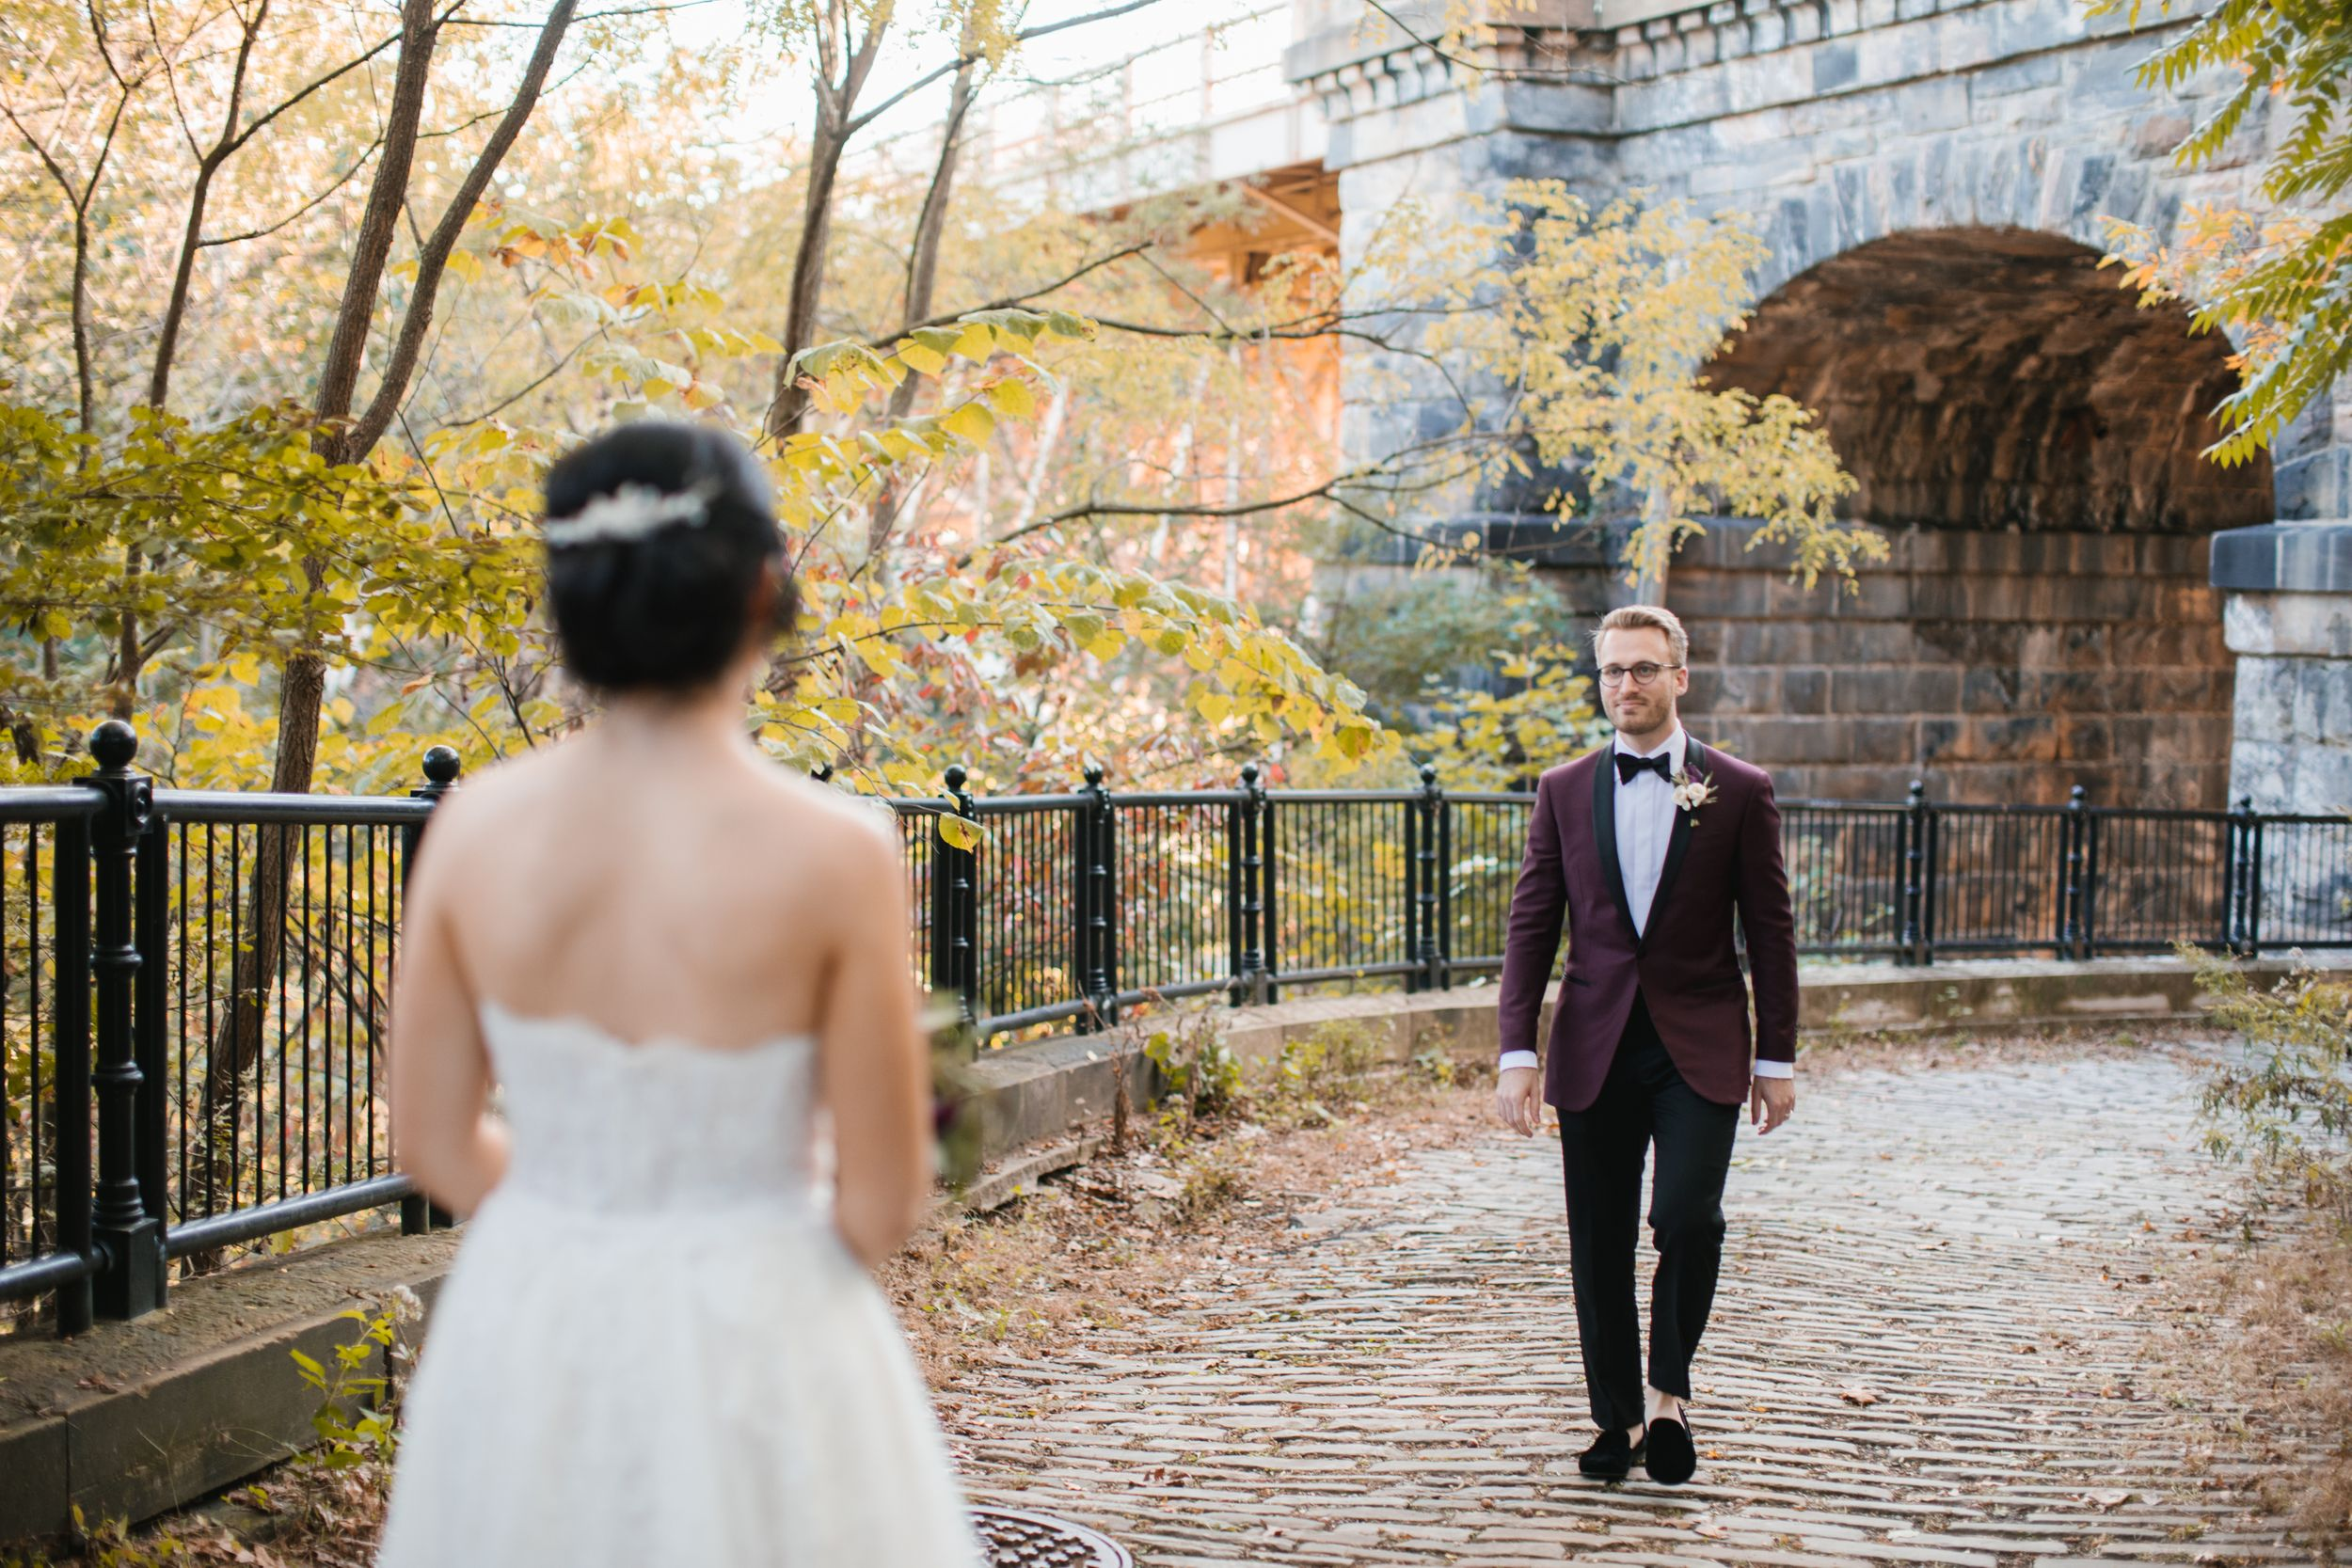 groom walking towards bride in park during fall